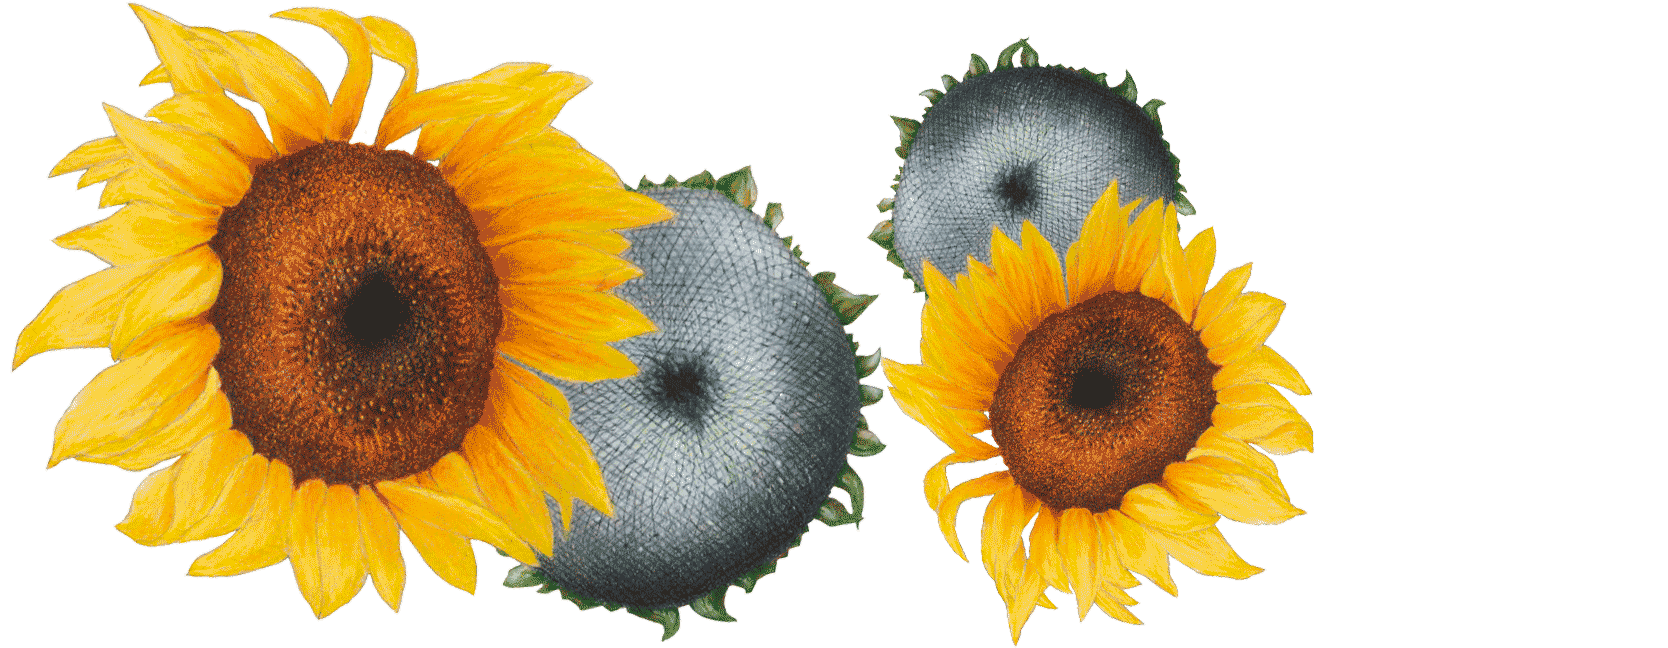 Illustration de Tournesol